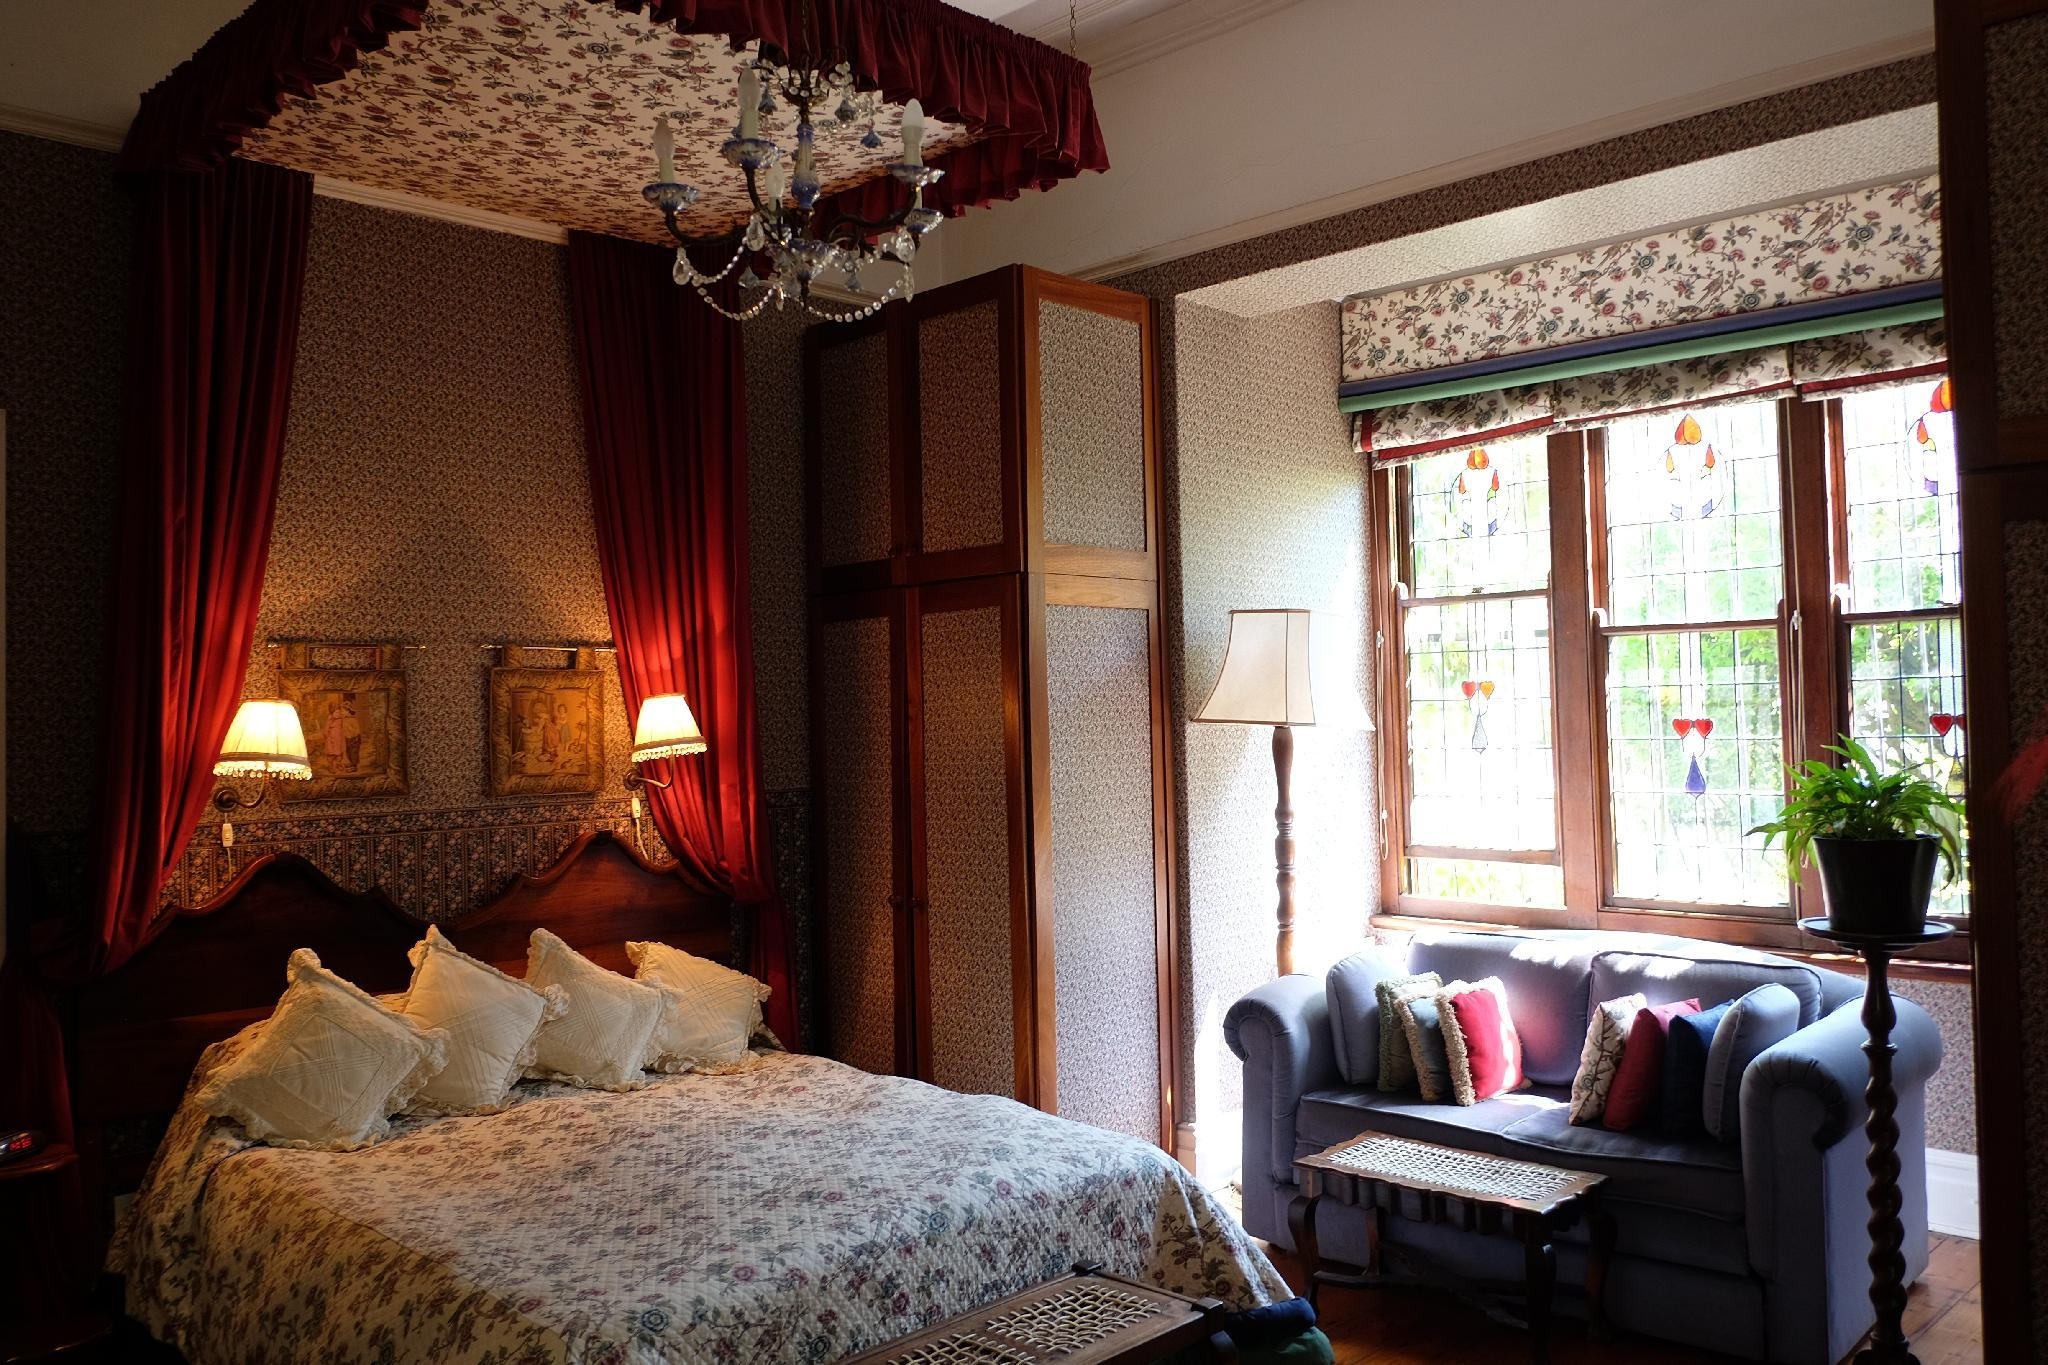 Jambo Guest House, City of Cape Town